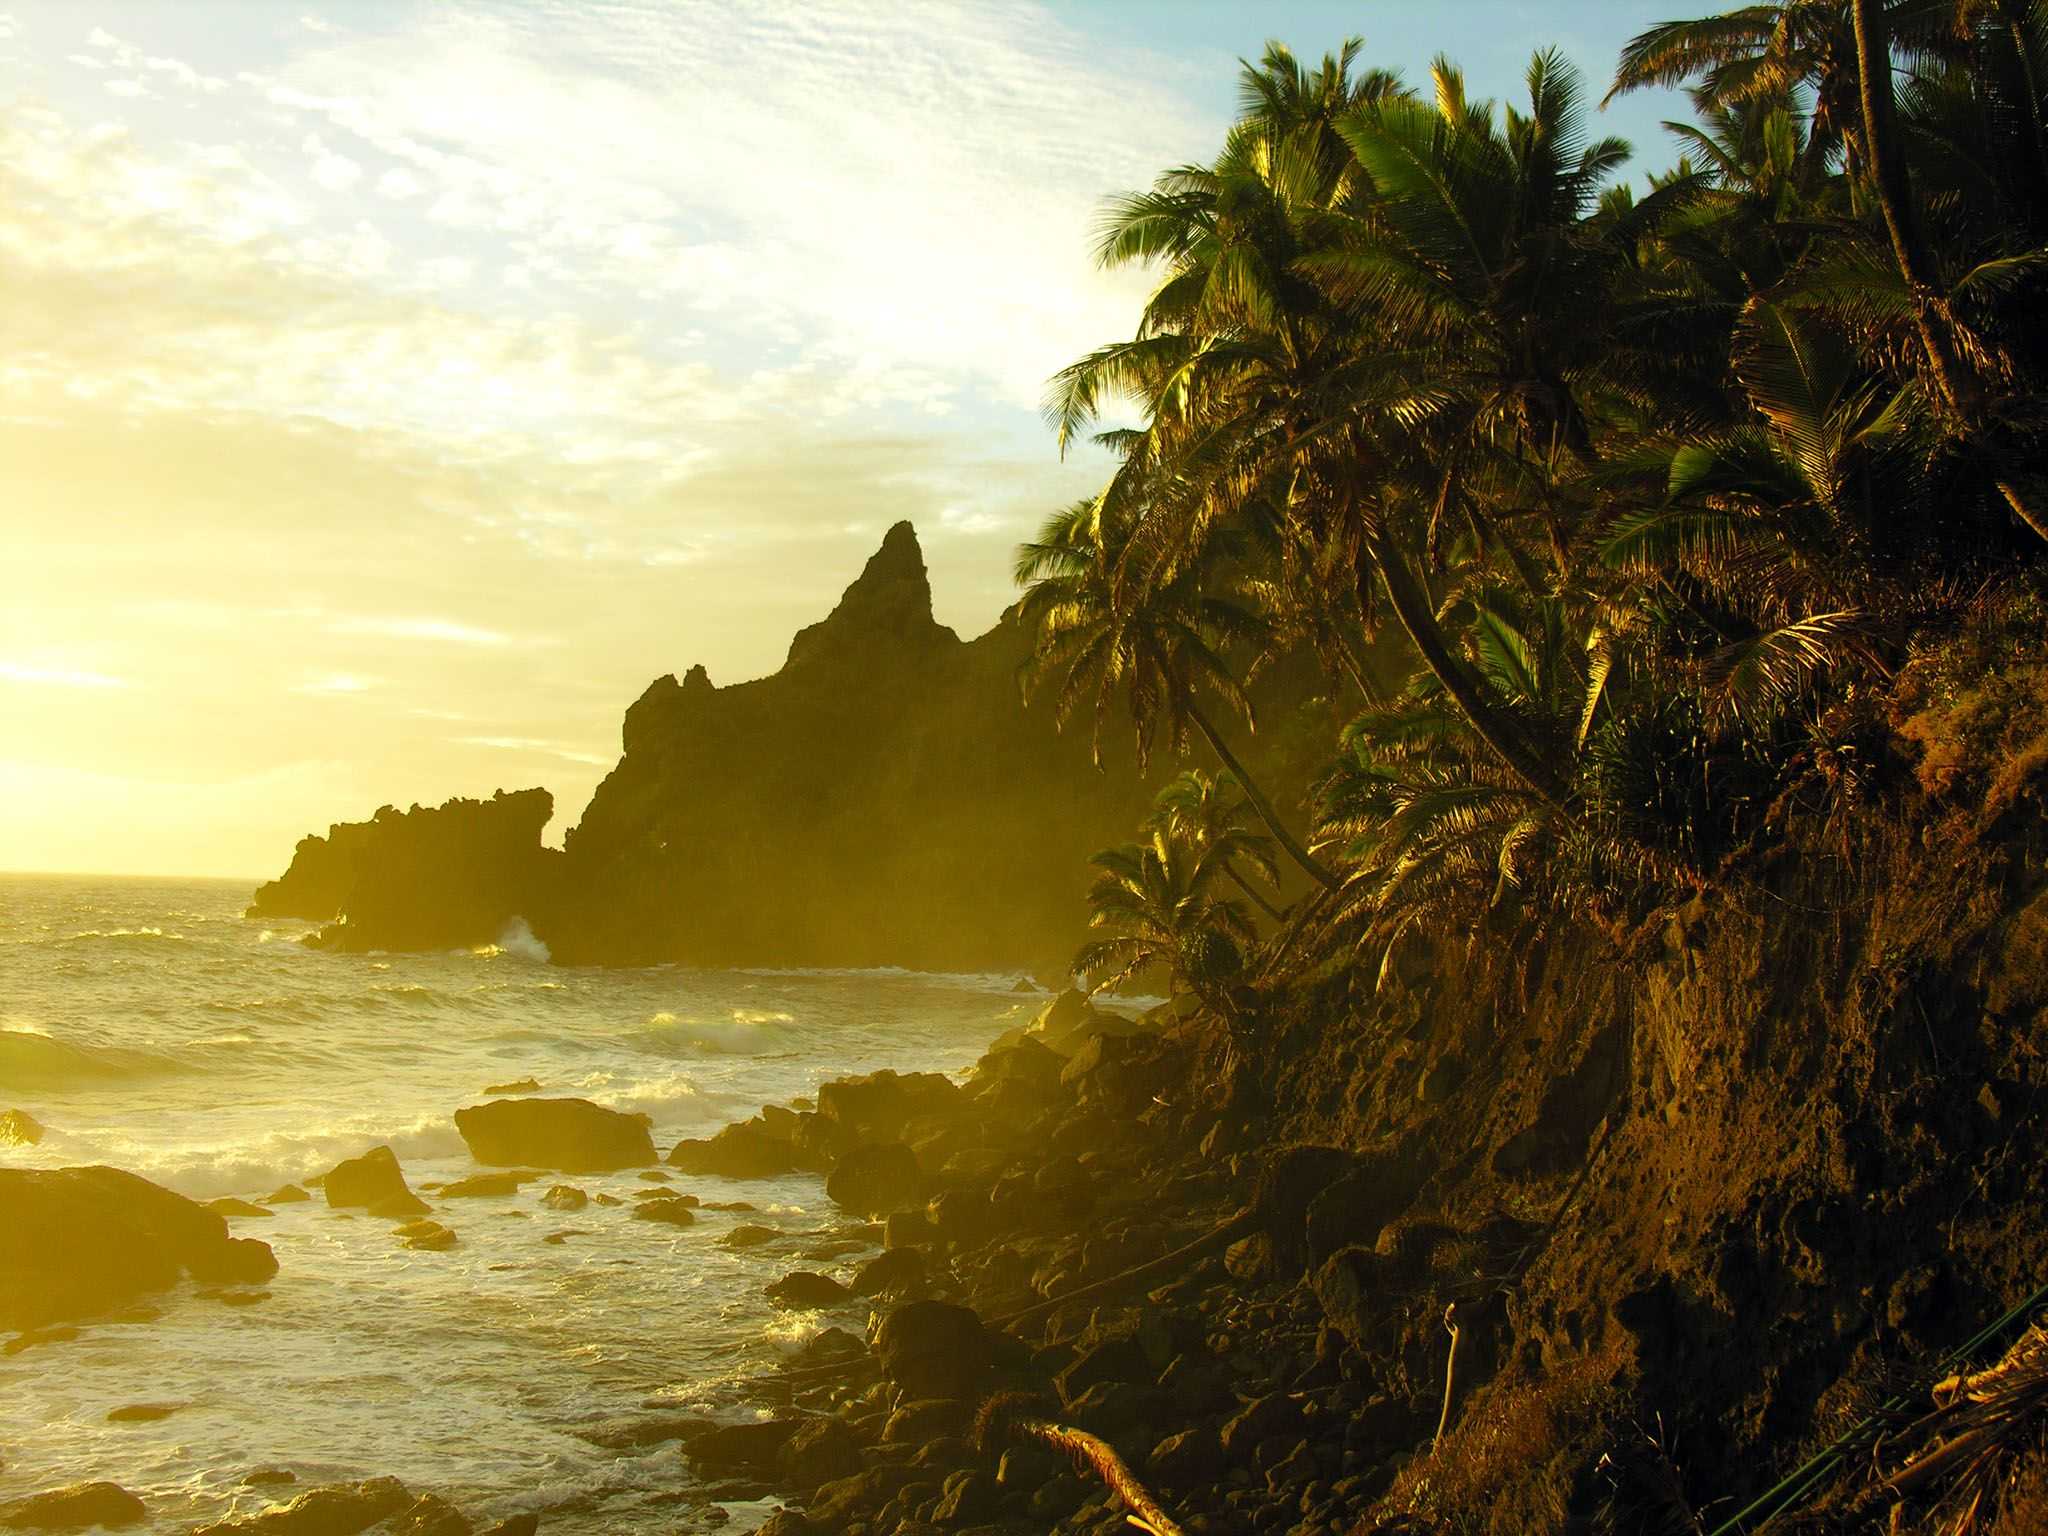 Pitcairn Island, Pitcairn Islands: The sunrise blazes over the cliffs and tropical trees of... [Photo of the day - 十月 2015]